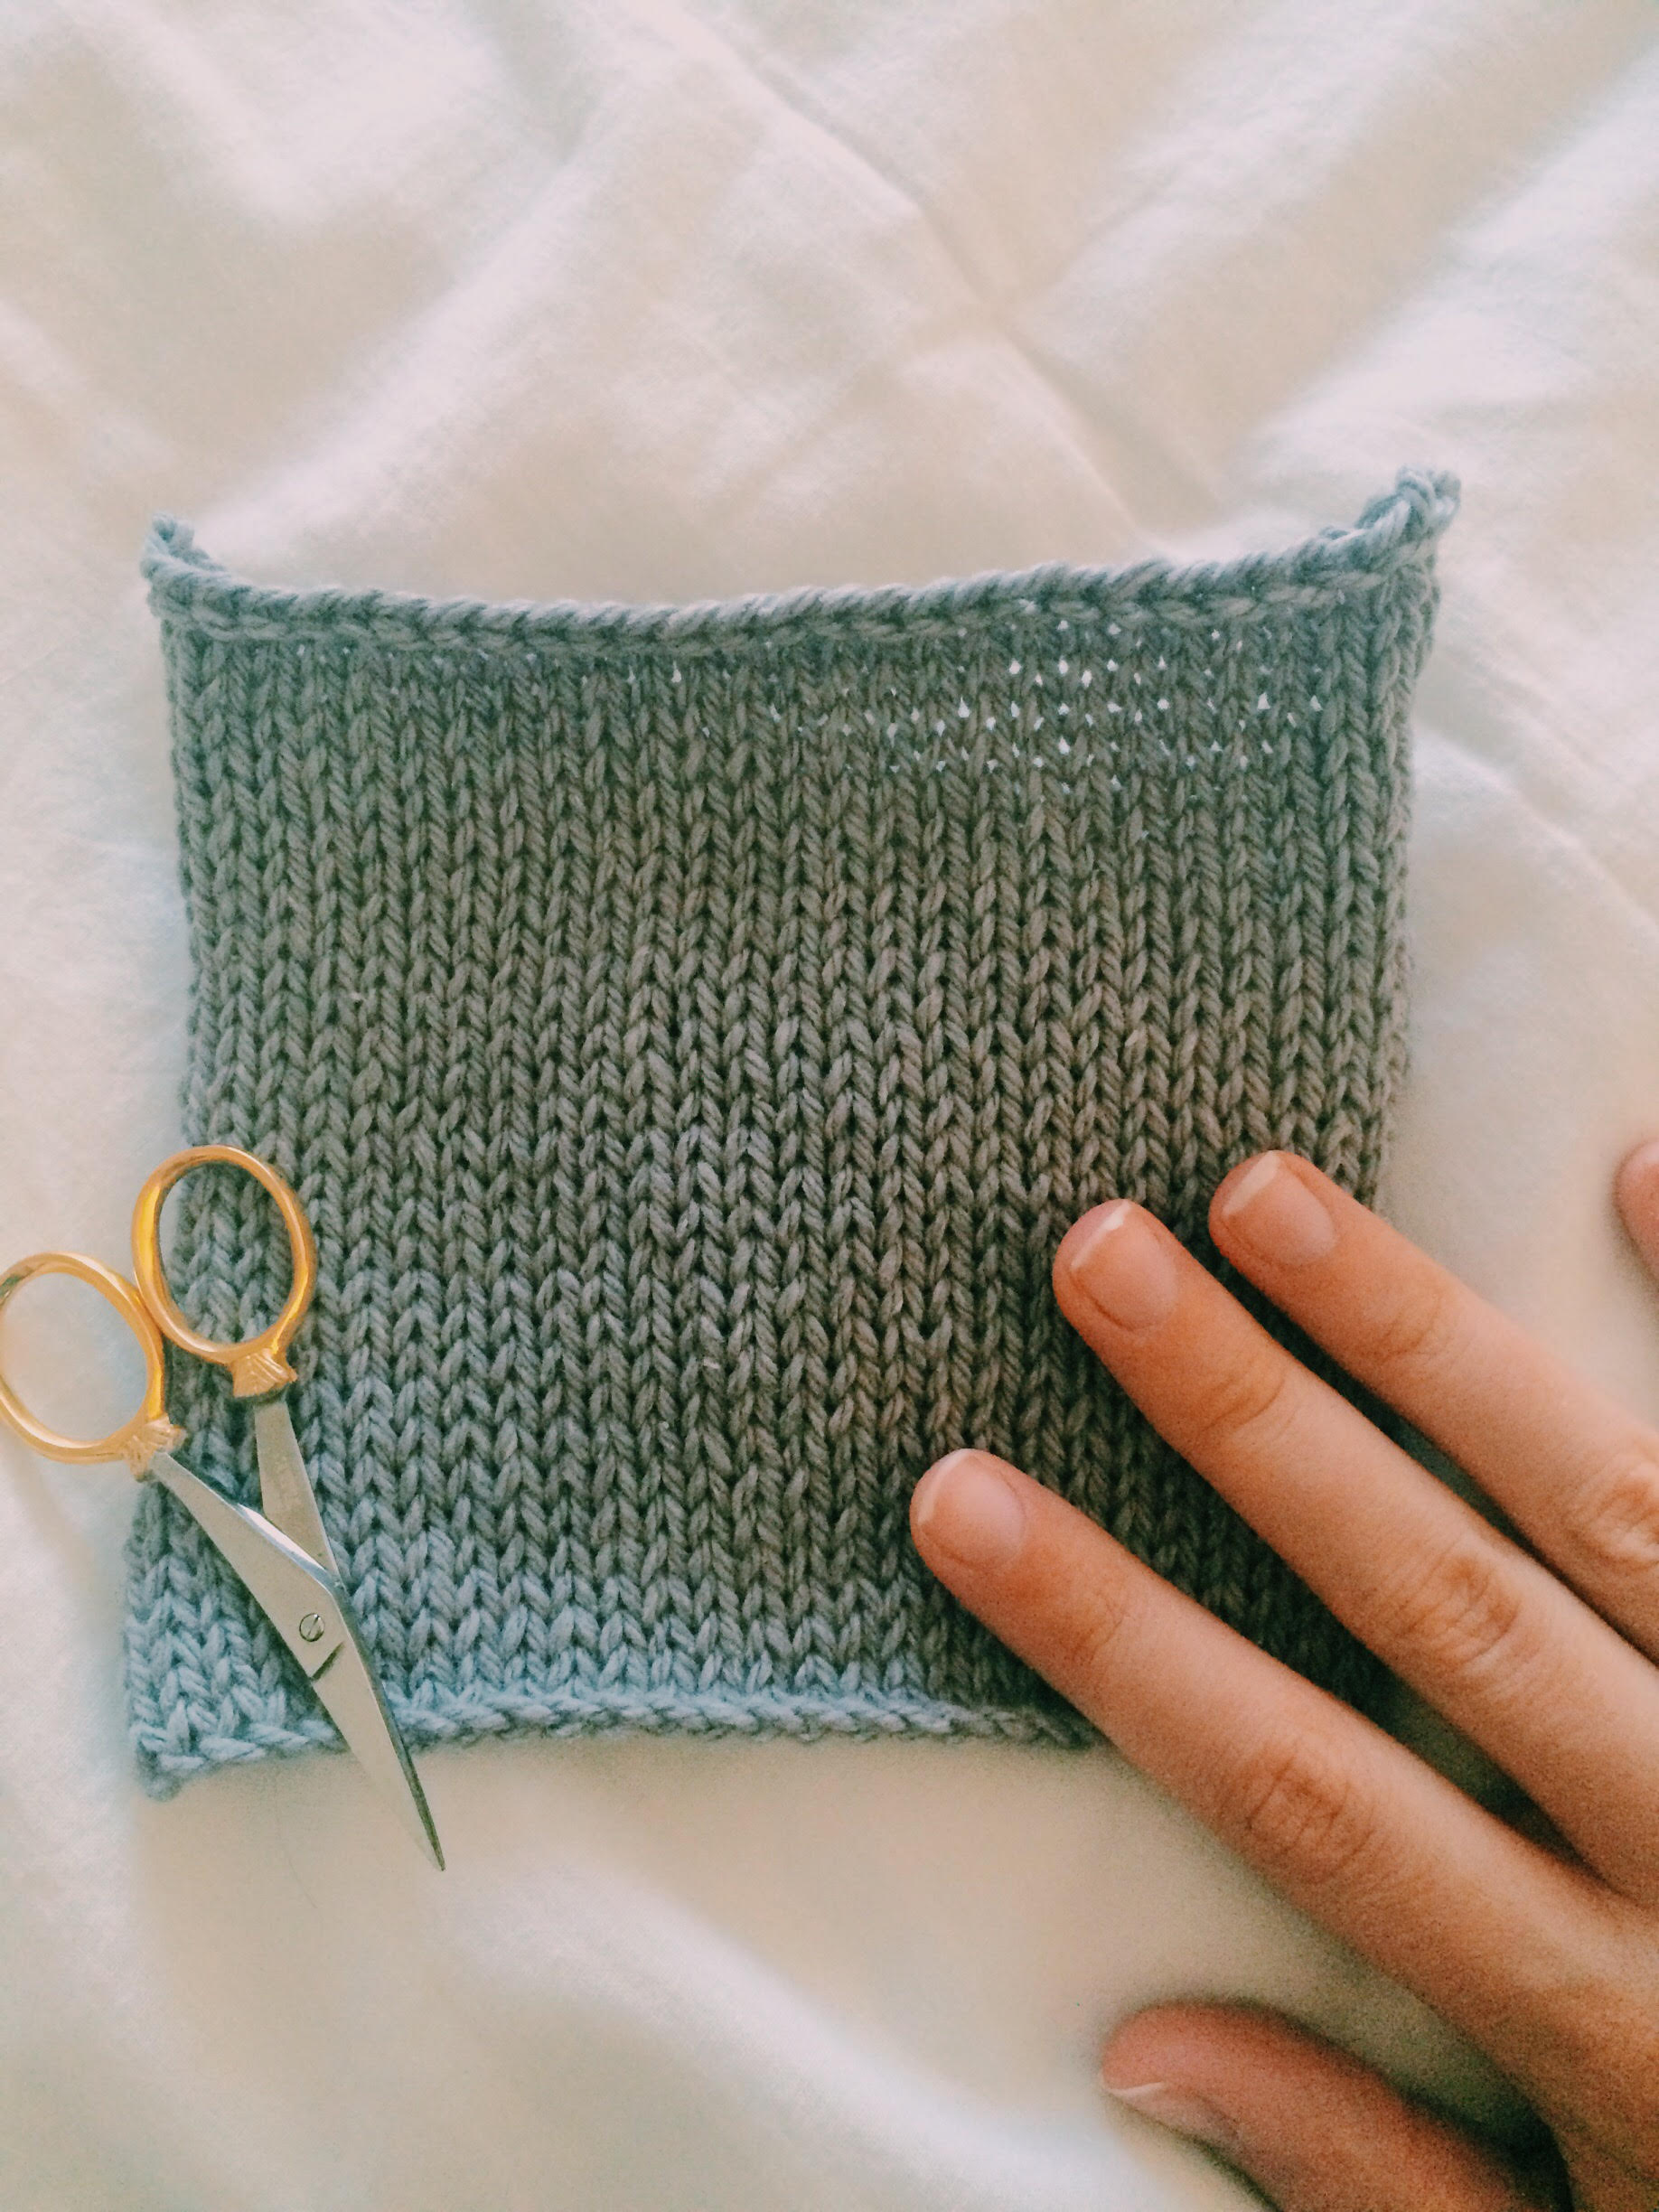 the initial swatch in O-Wool, knit in the round.